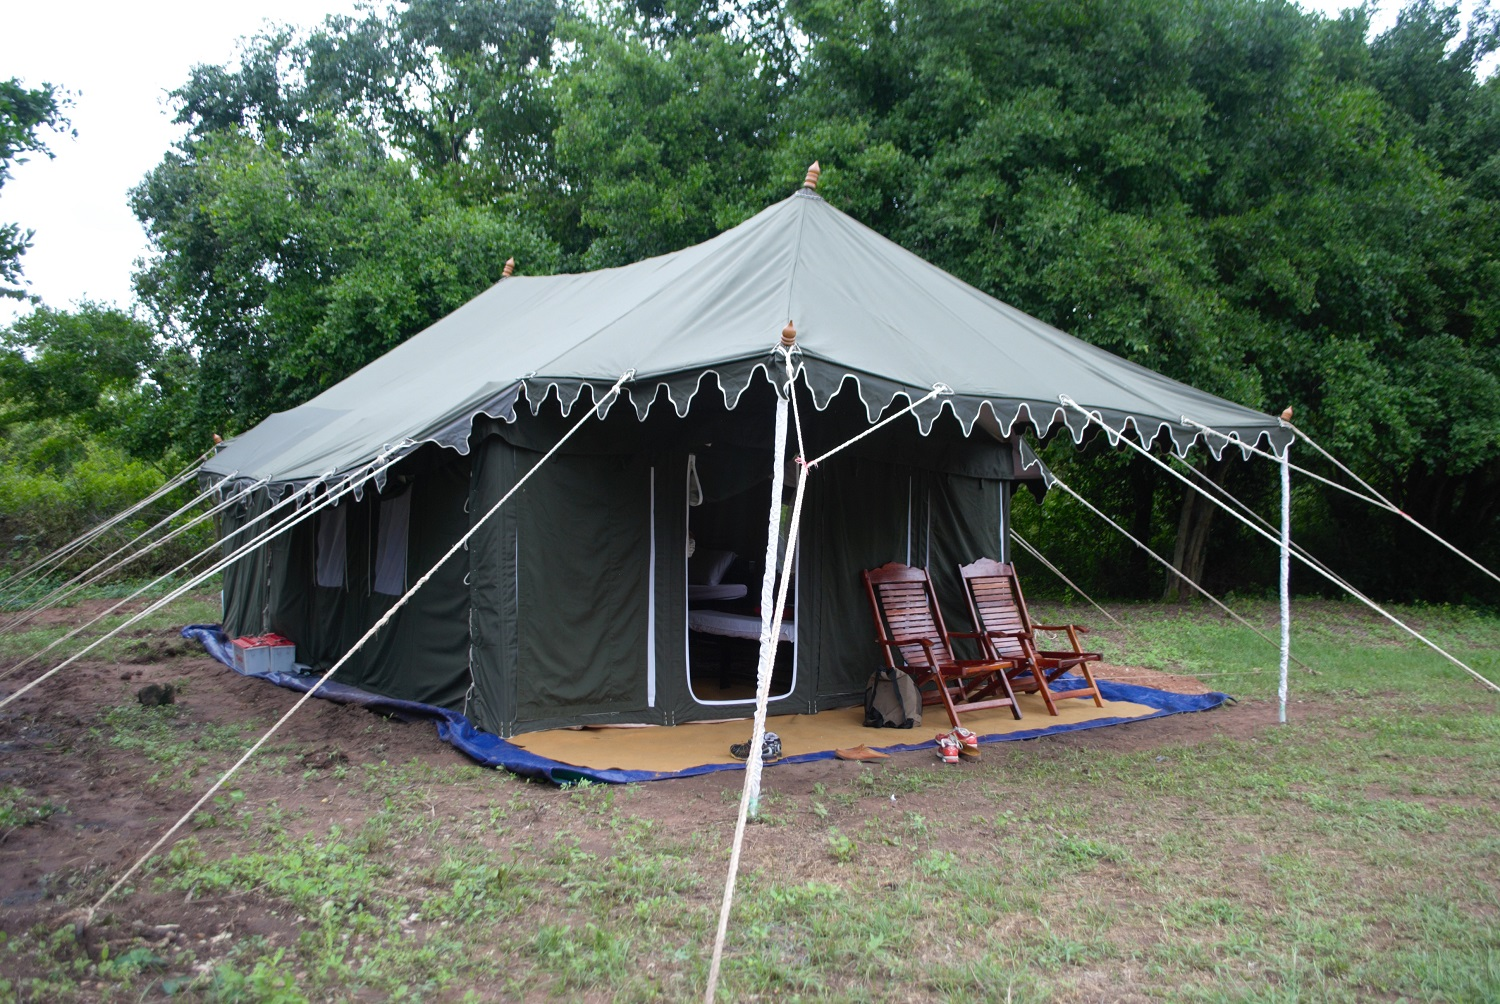 Luxury tent, Banteay Chhmar, Cambodia